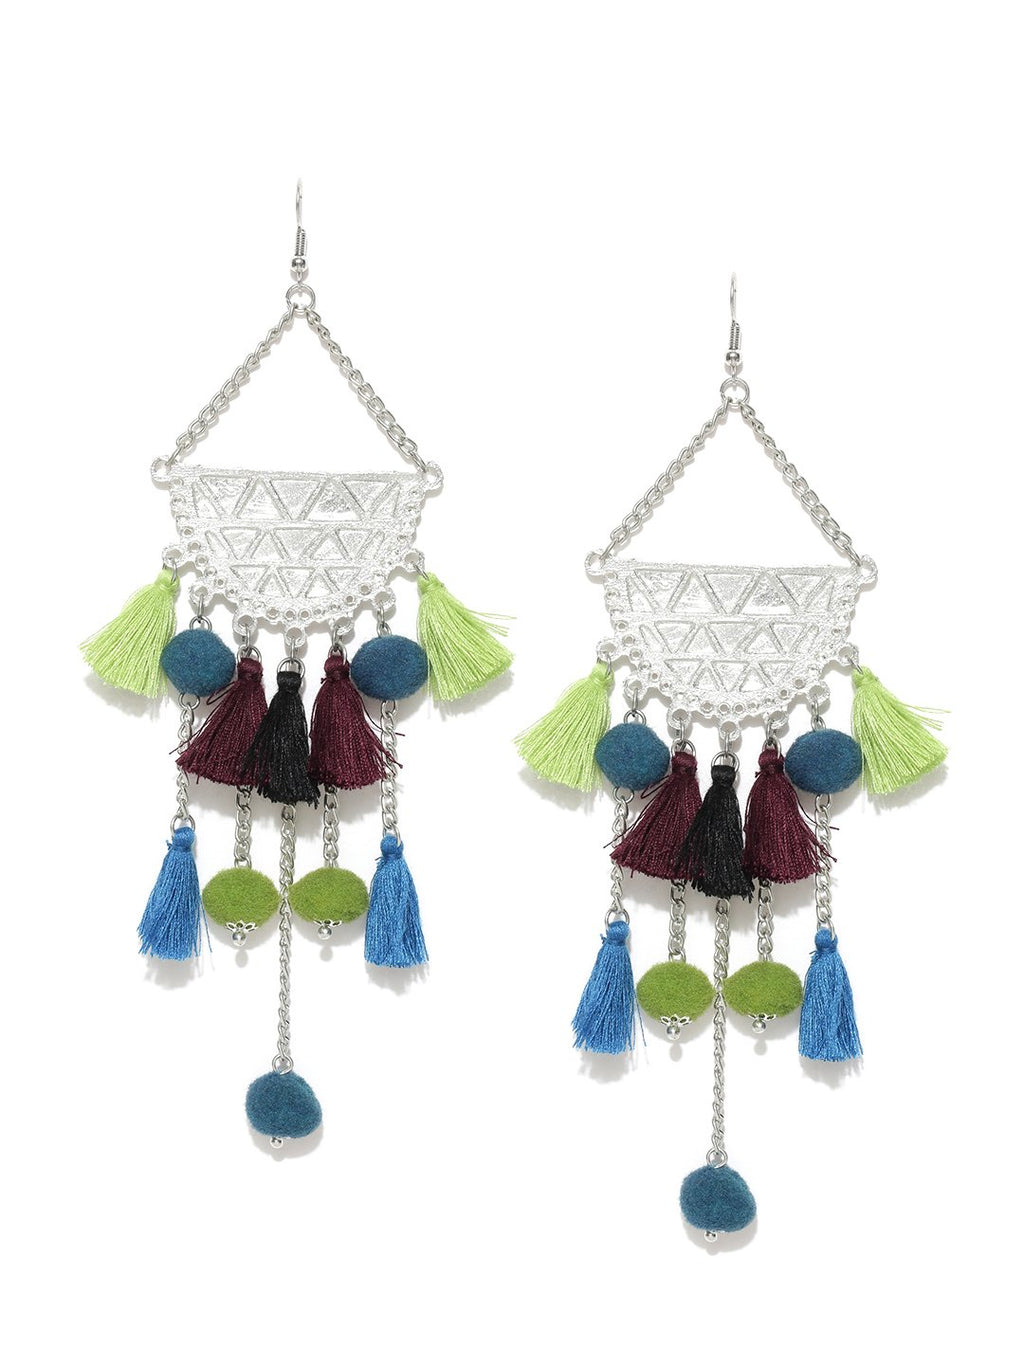 Blueberry oxidized silver and multicolored tassel drop earrings